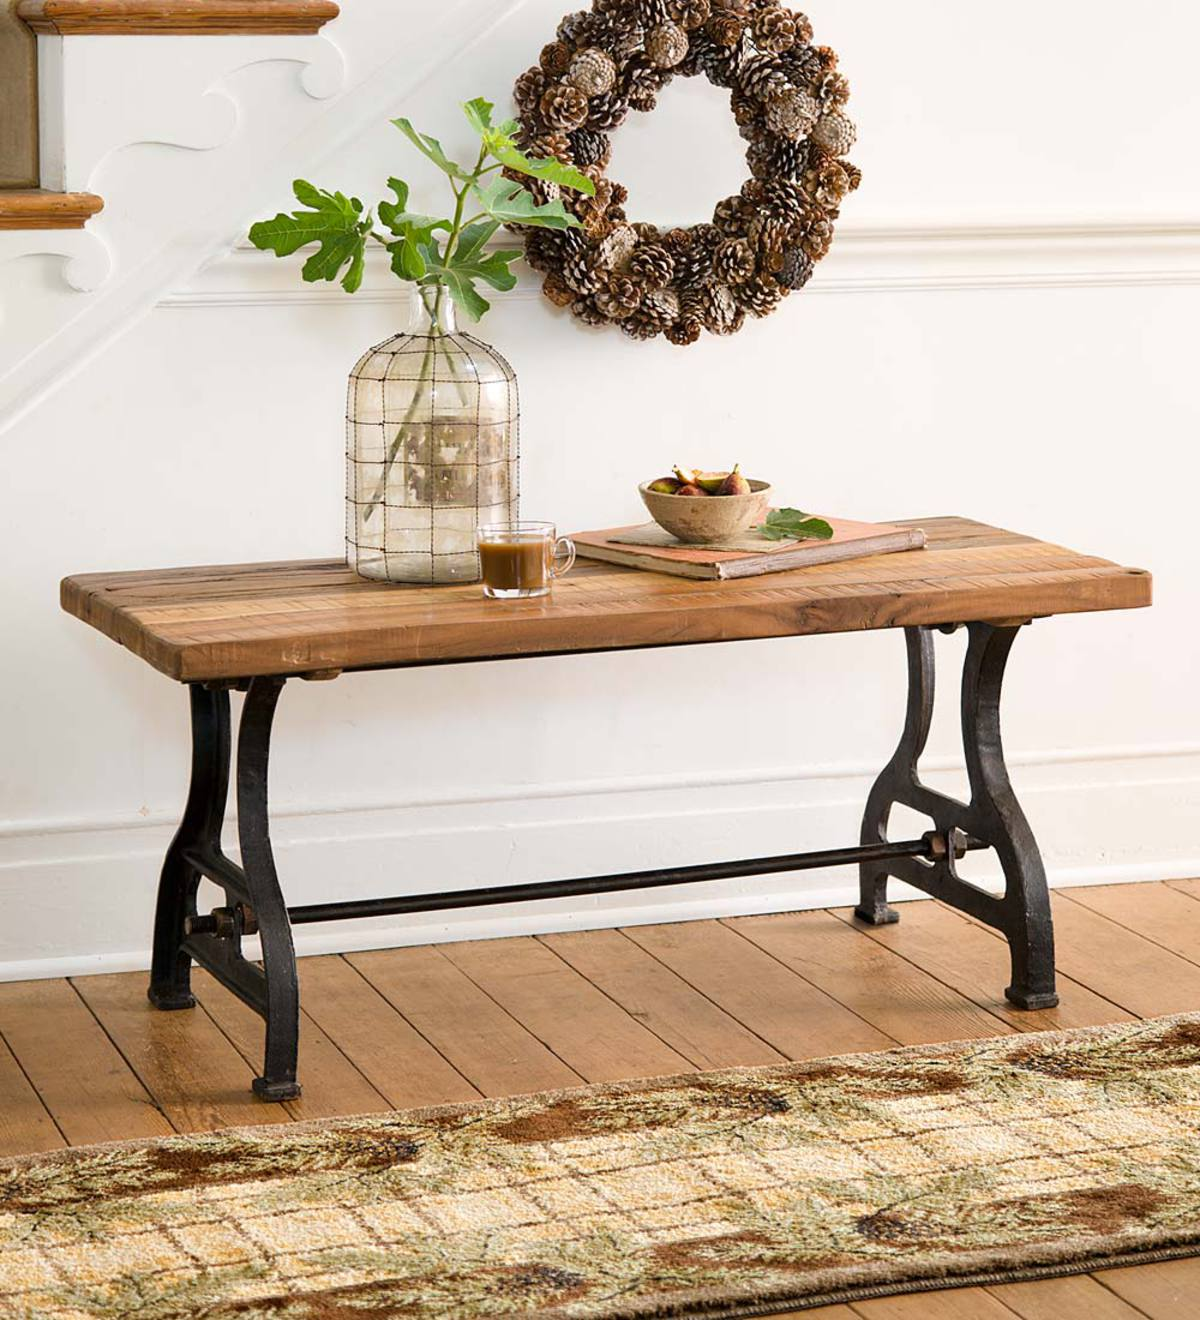 Plow And Hearth Furniture: Birmingham Indoor/Outdoor Reclaimed Wood Bench With Iron